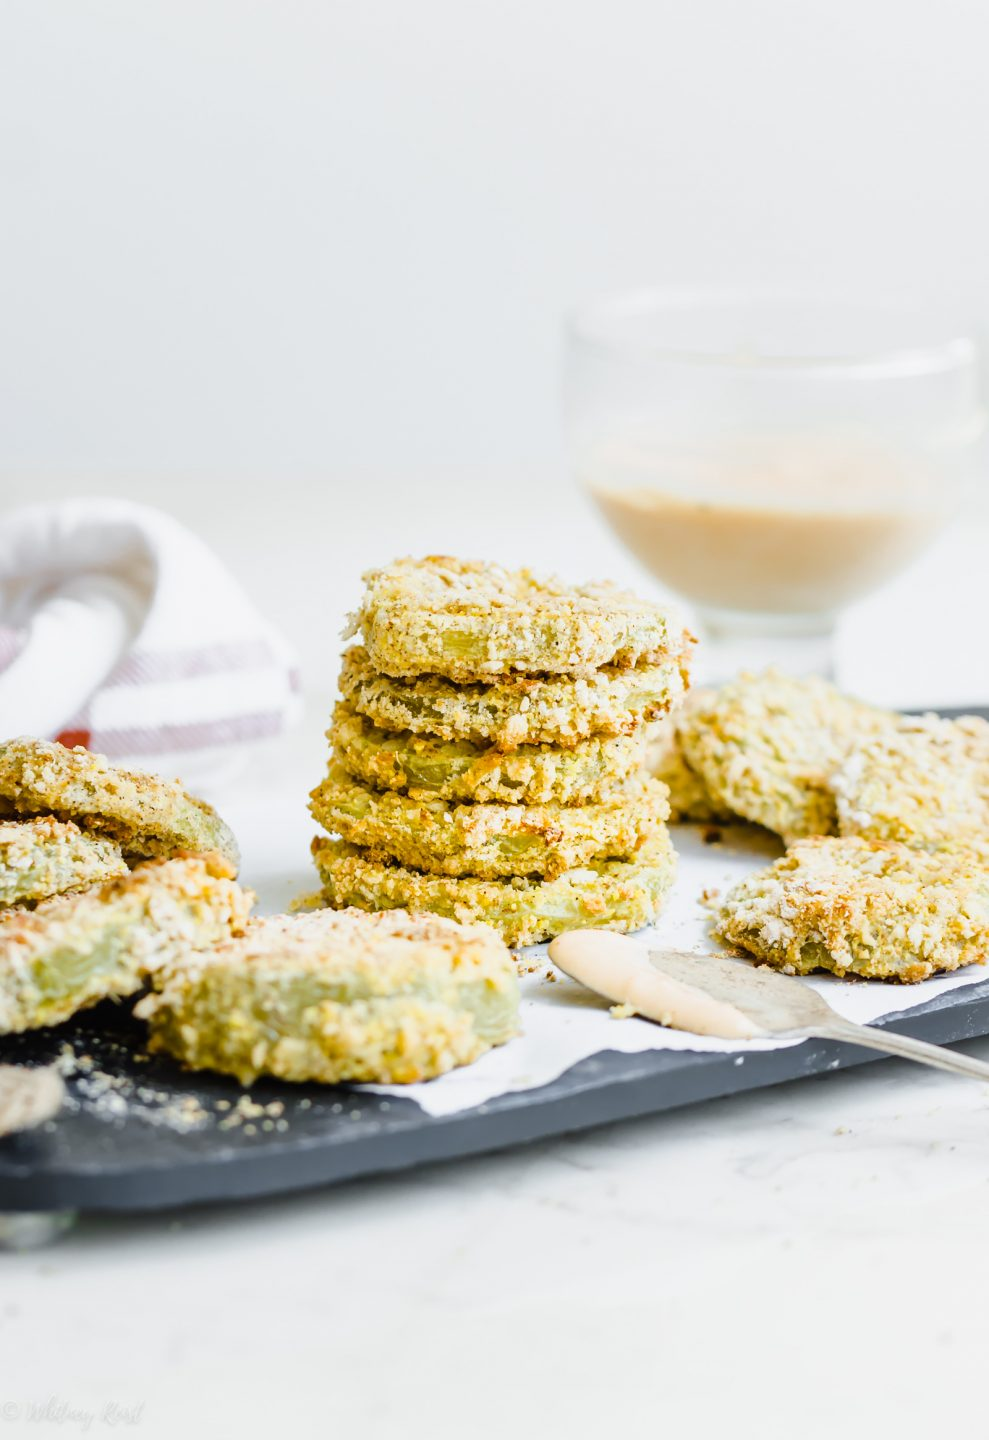 Oven-fried green tomatoes stacked on a slate platter with a bowl of hot sauce aioli on the side.